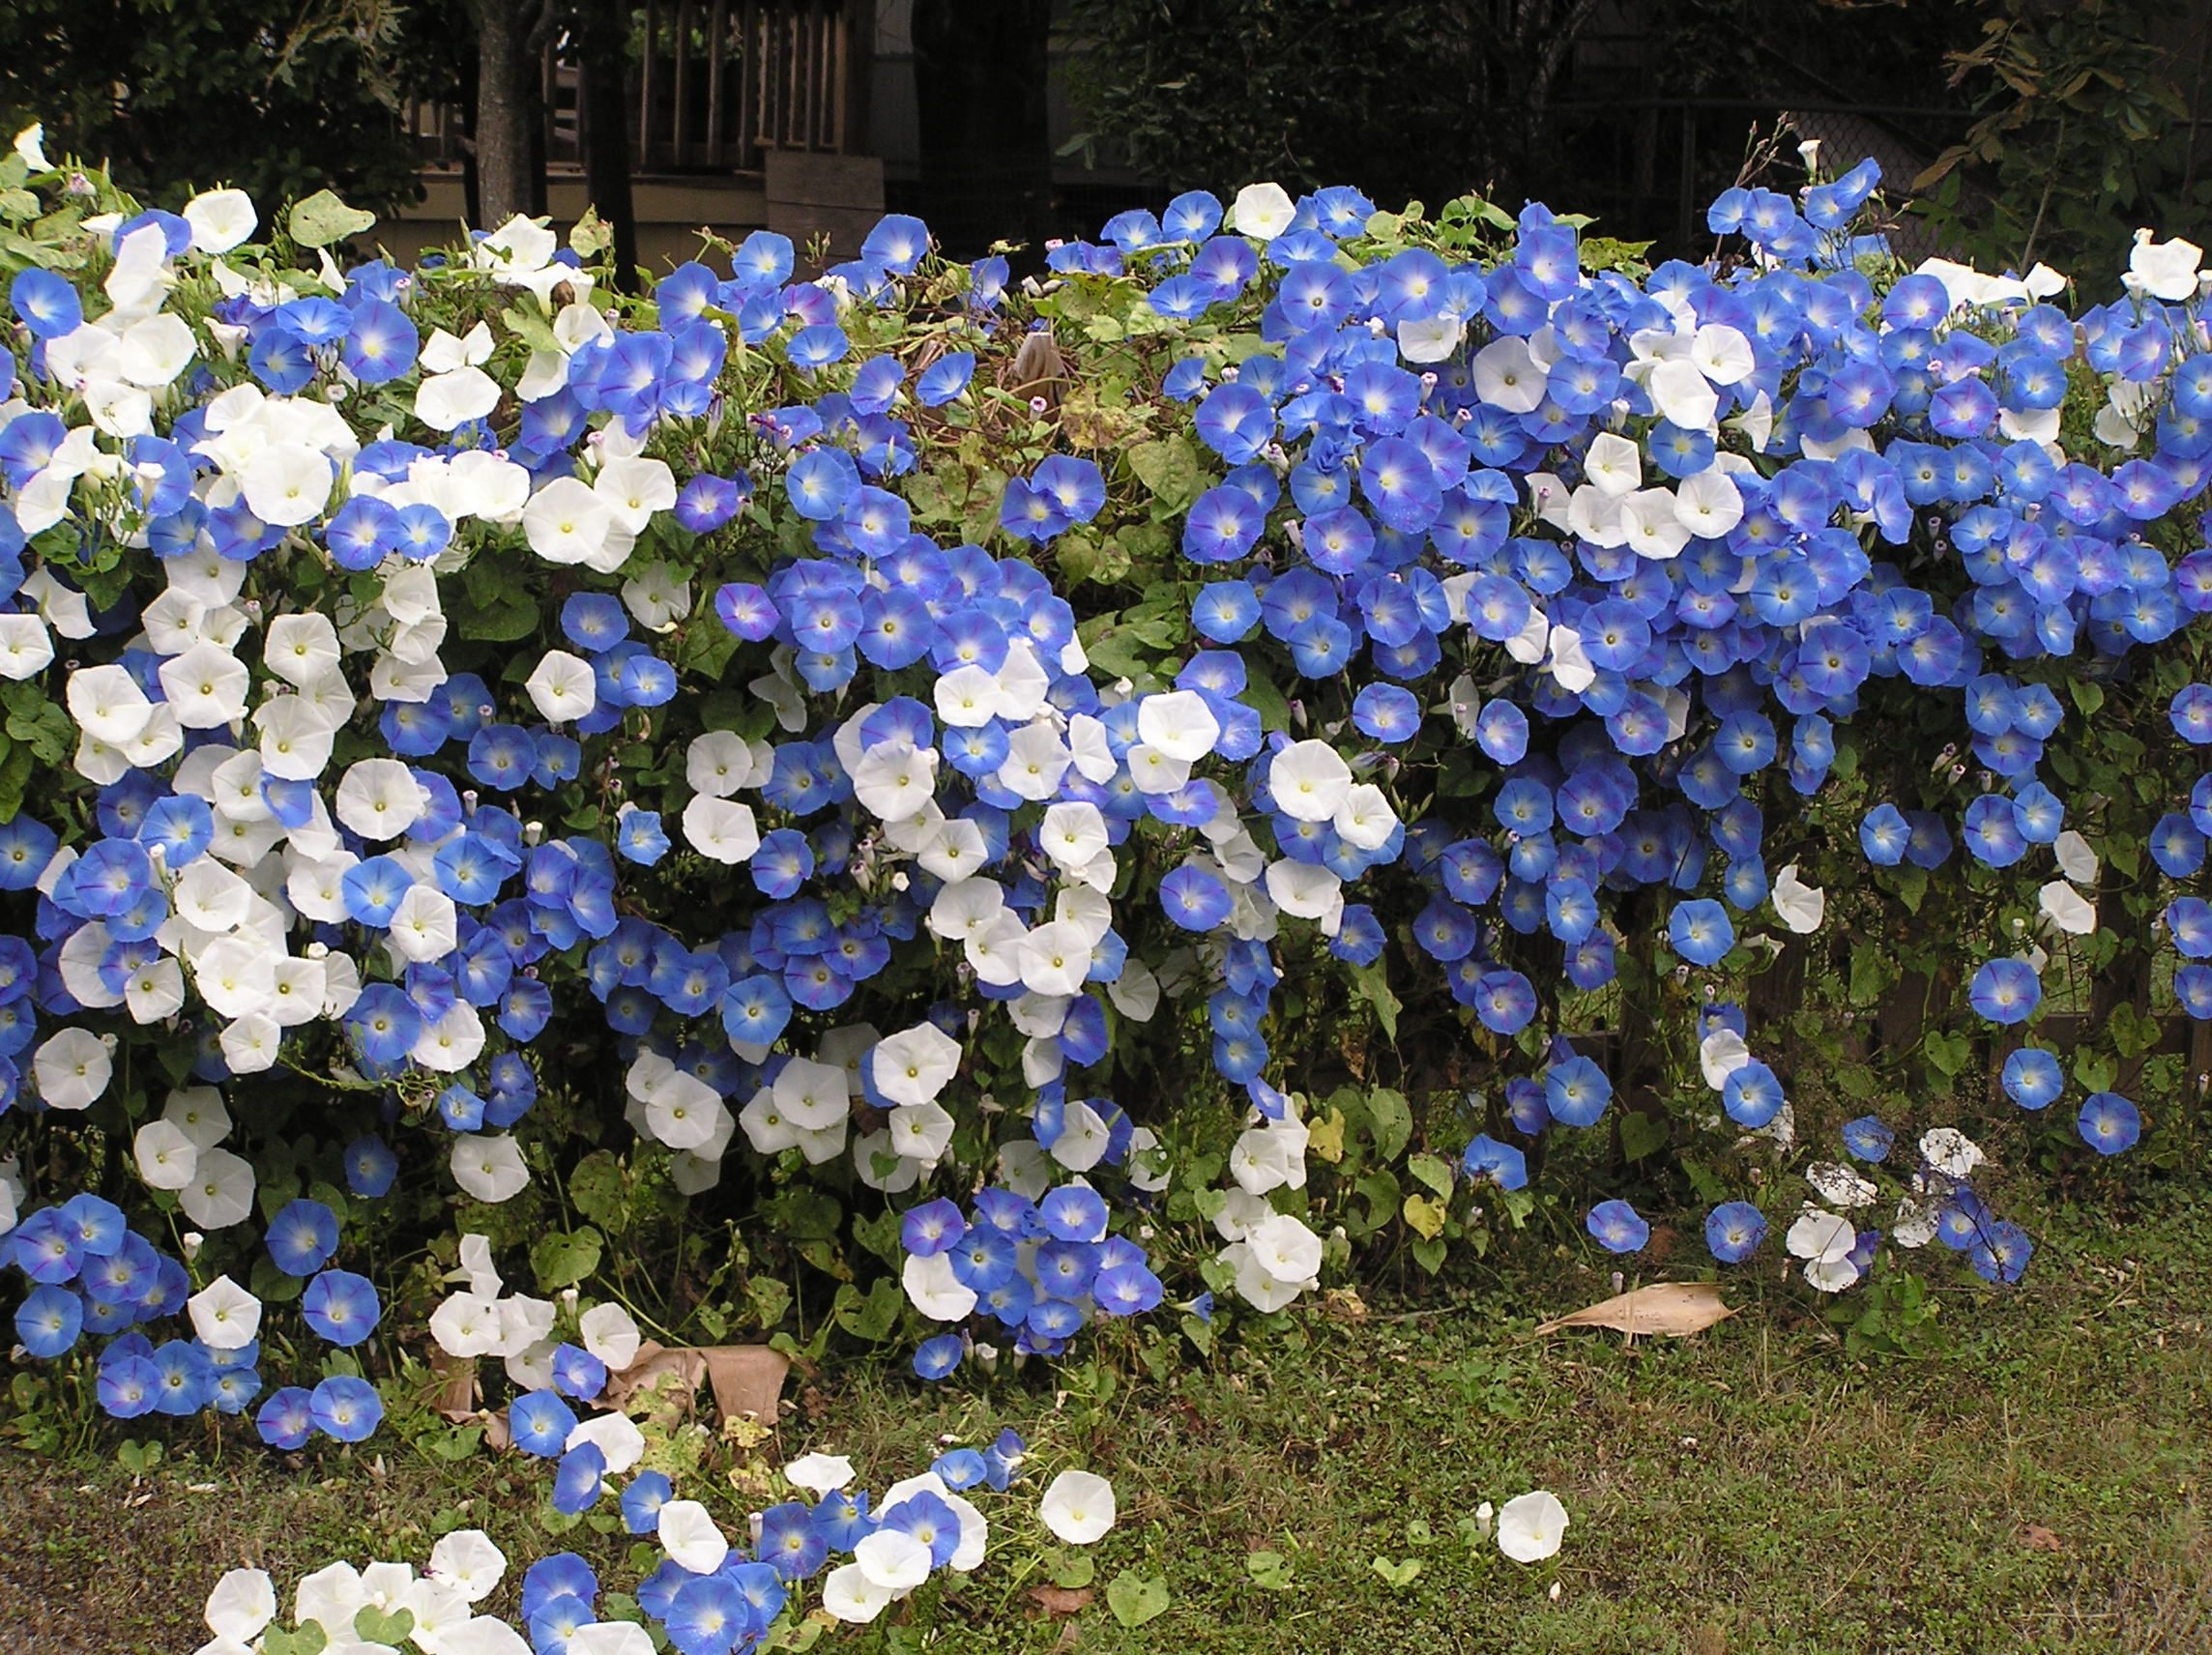 Morning Glory Fence Line Love It Morning Glory Morning Glory Flowers Blue Morning Glory